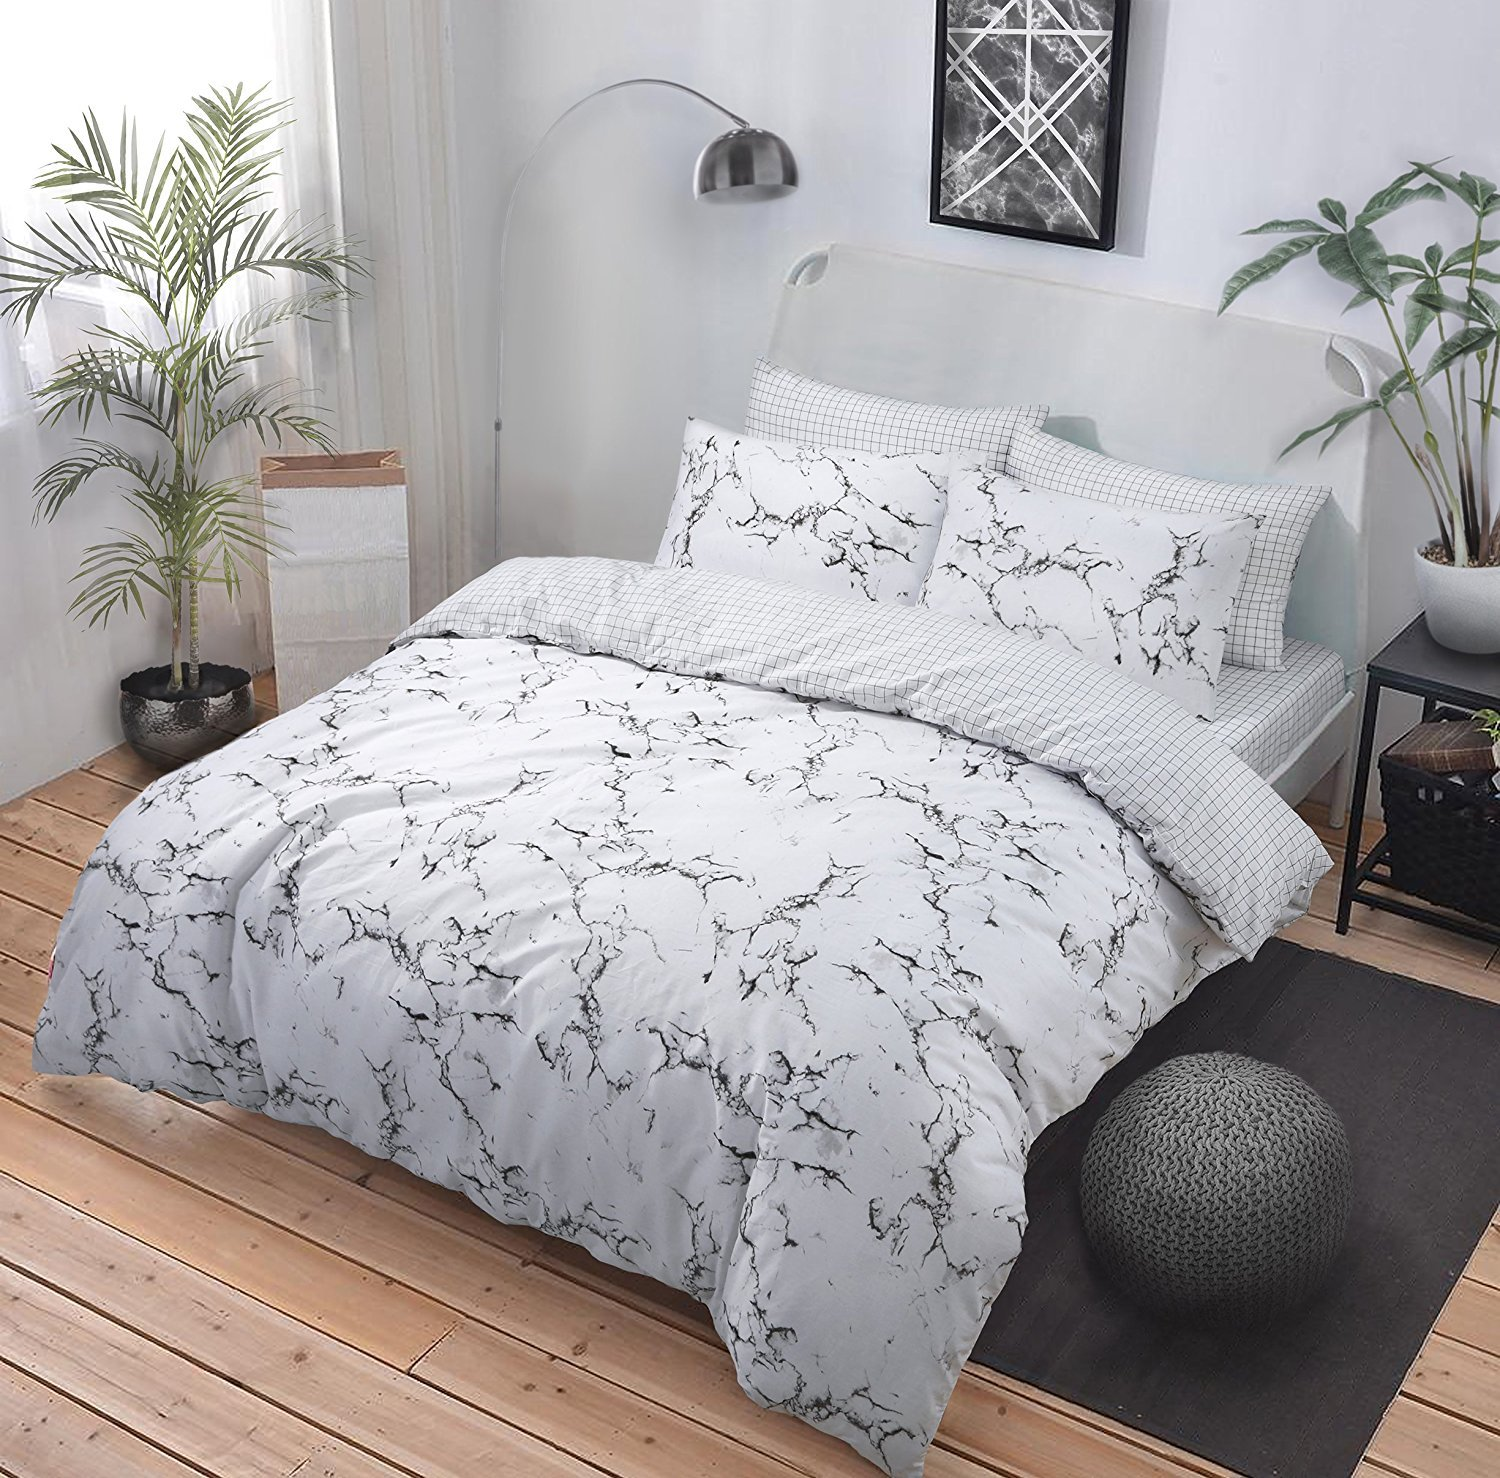 pieridae marble effect grey duvet quilt bedding cover and pillowcase bedding set add a splash of marble effect to your bedroom with our marble grey duvet